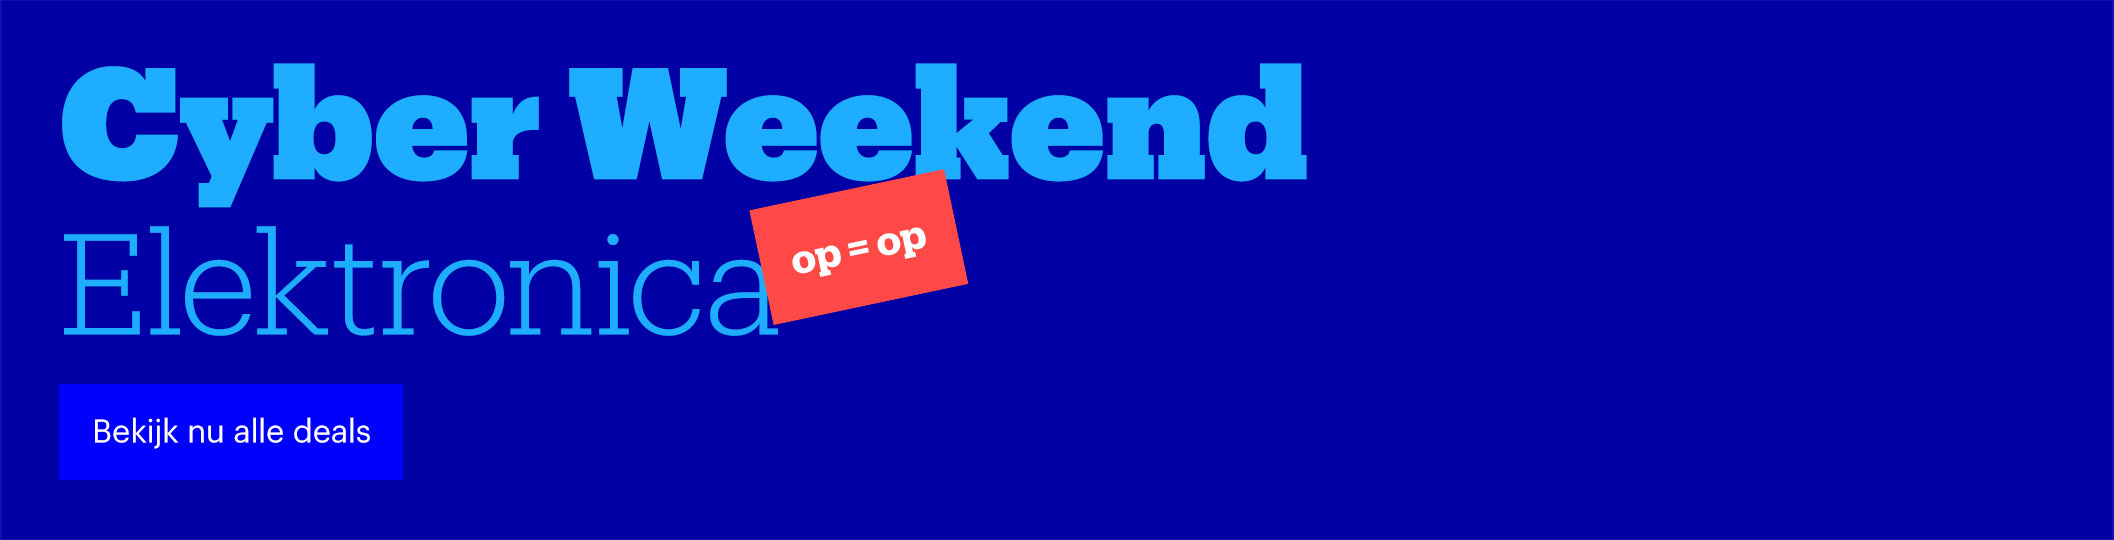 Cyber Weekend | Elektronica